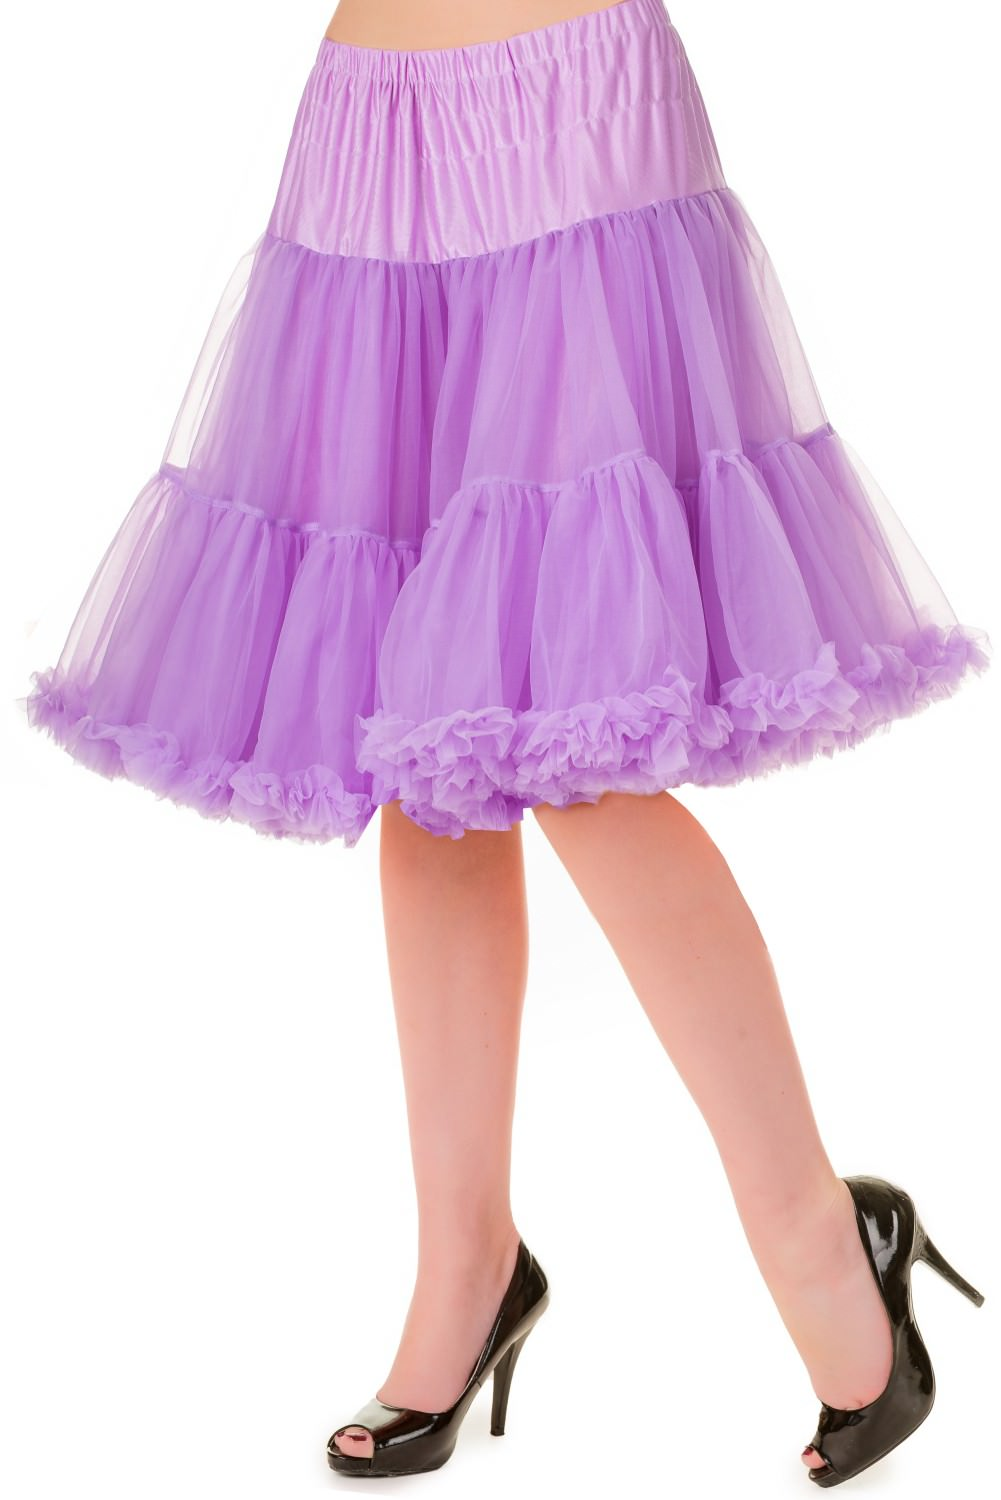 Walkabout Petticoat in Lavender - Natasha Marie Clothing